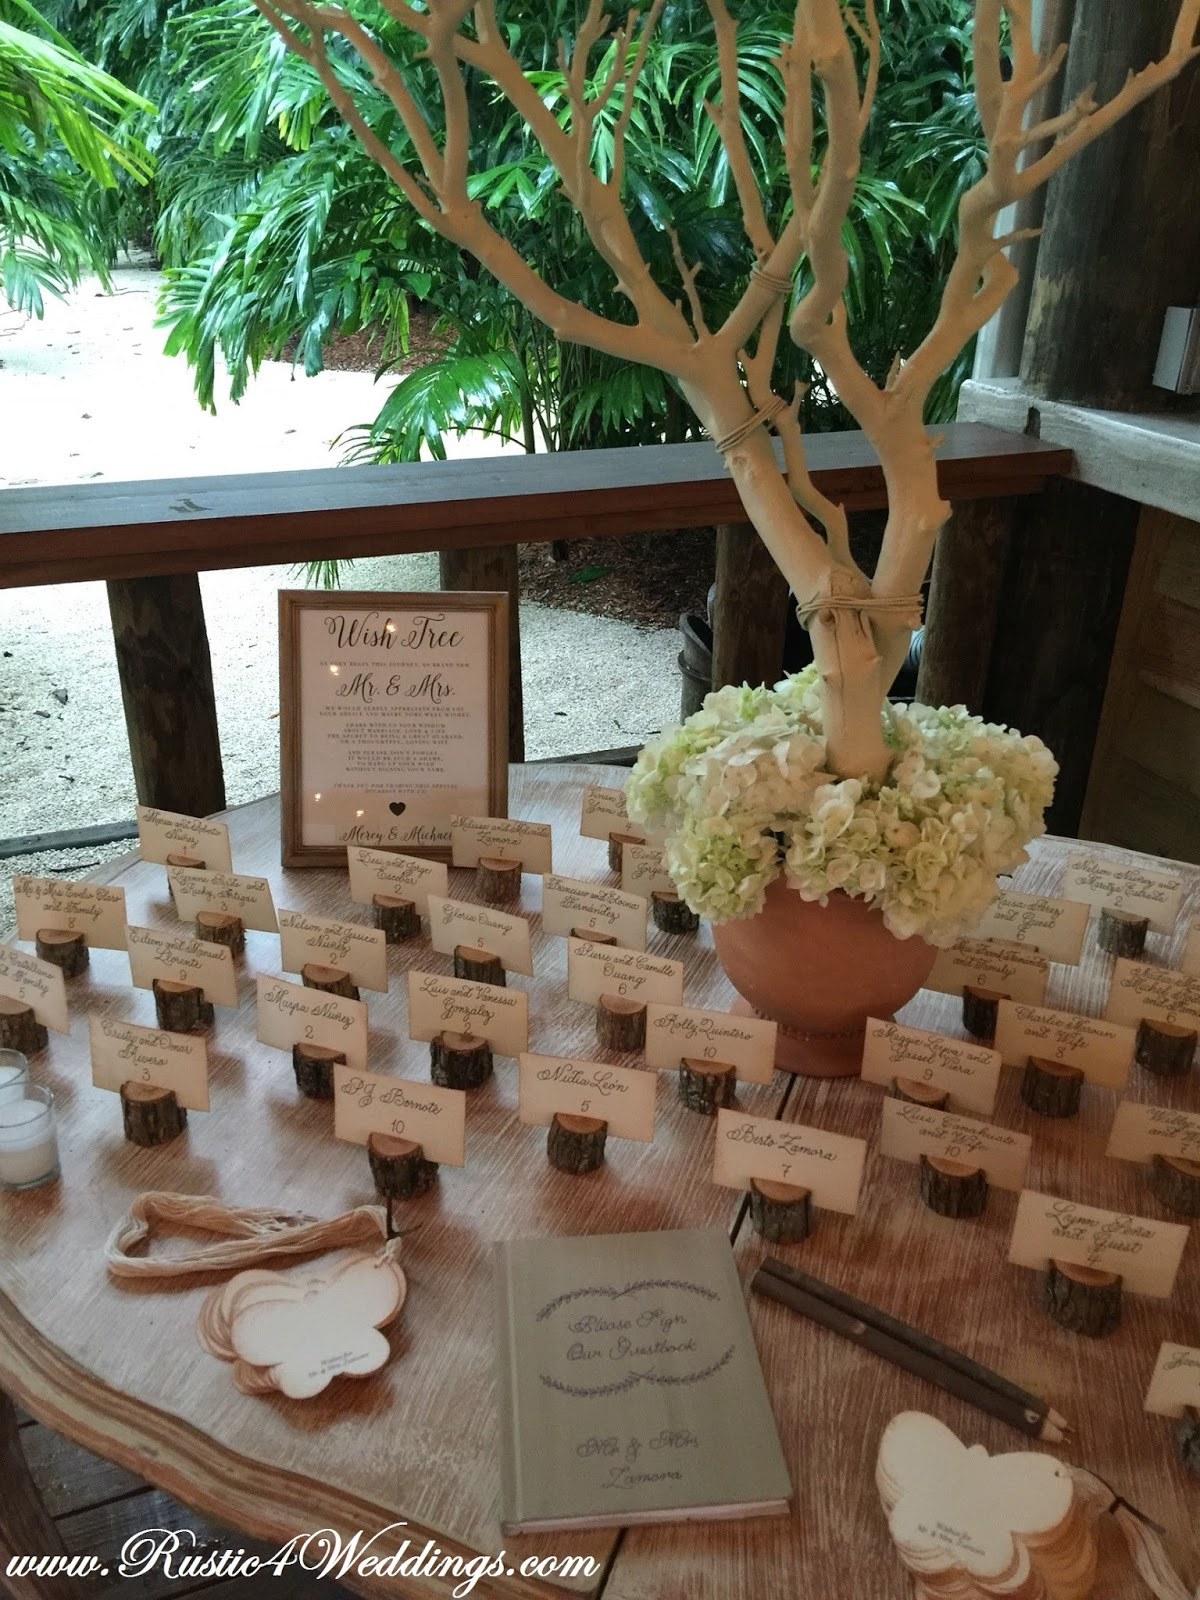 Gorgeous Rustic Beach Theme Wedding Featuring Our Tree